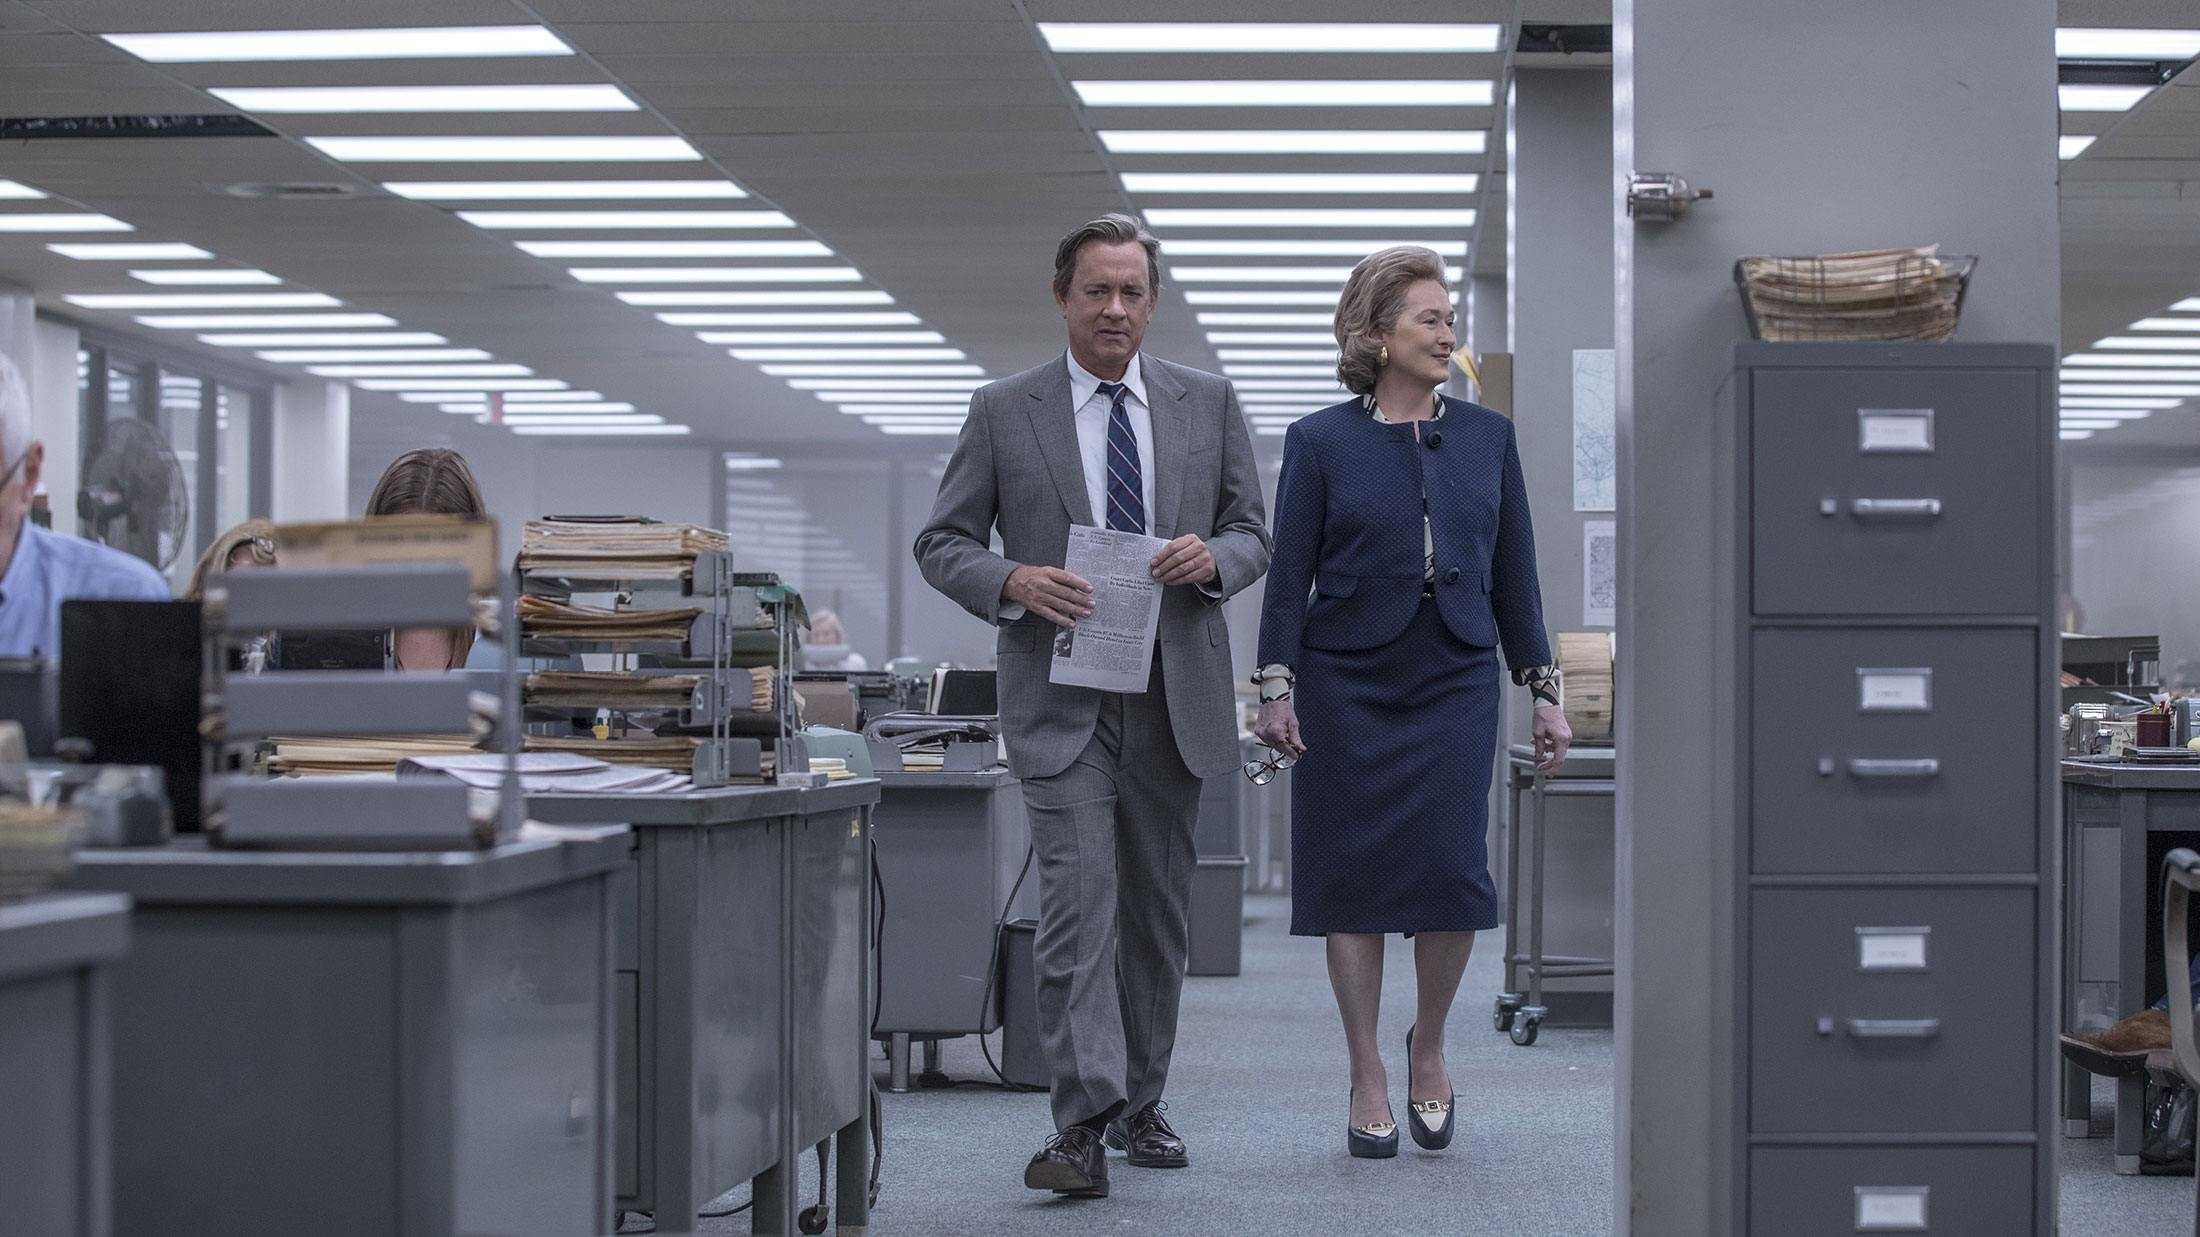 """The Post"", la sfida del giornalismo all'establishment politico e sociale"